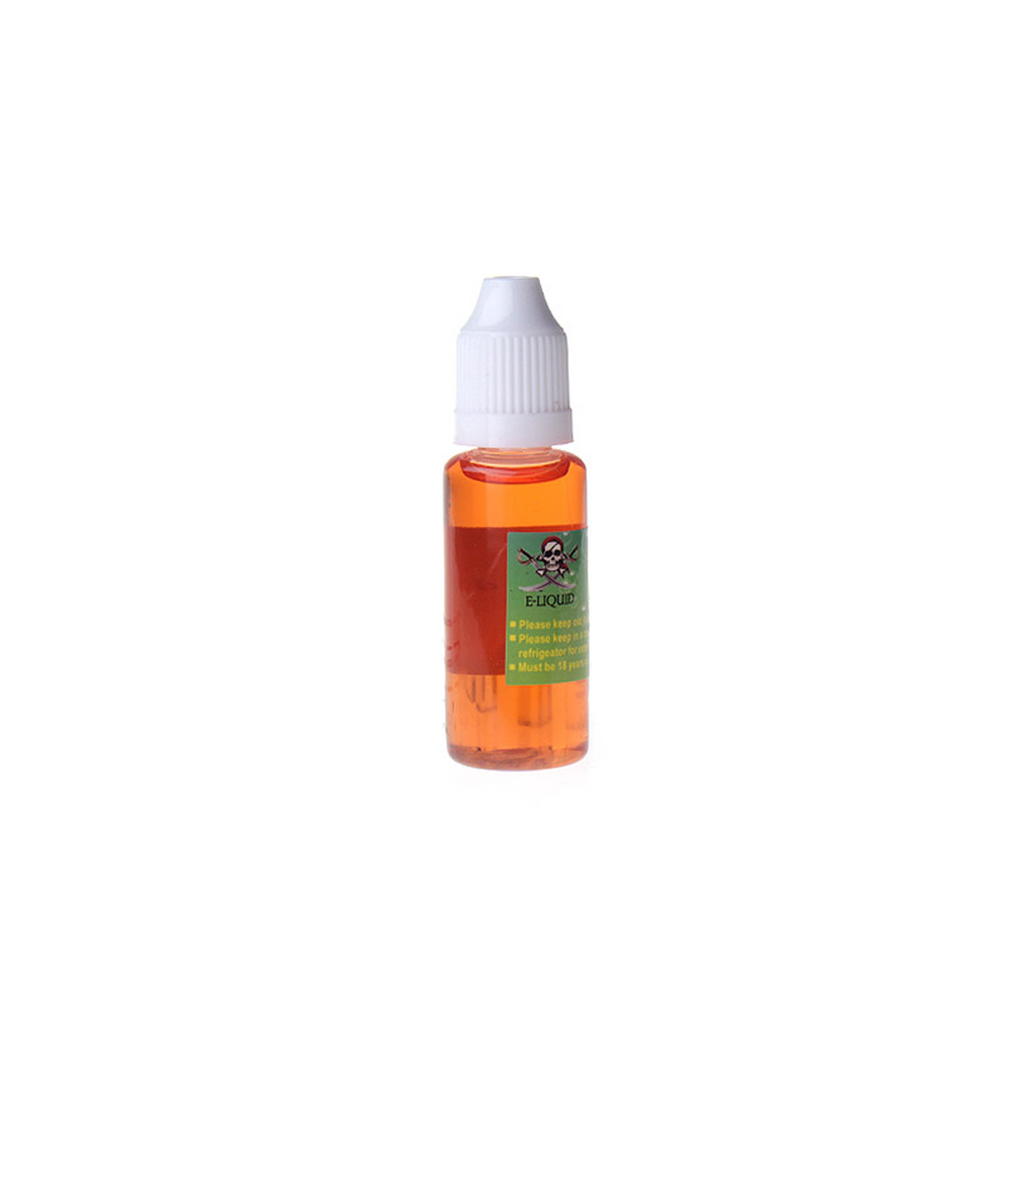 E-liquid Rum Vape Juice 20ml-Purplevibe